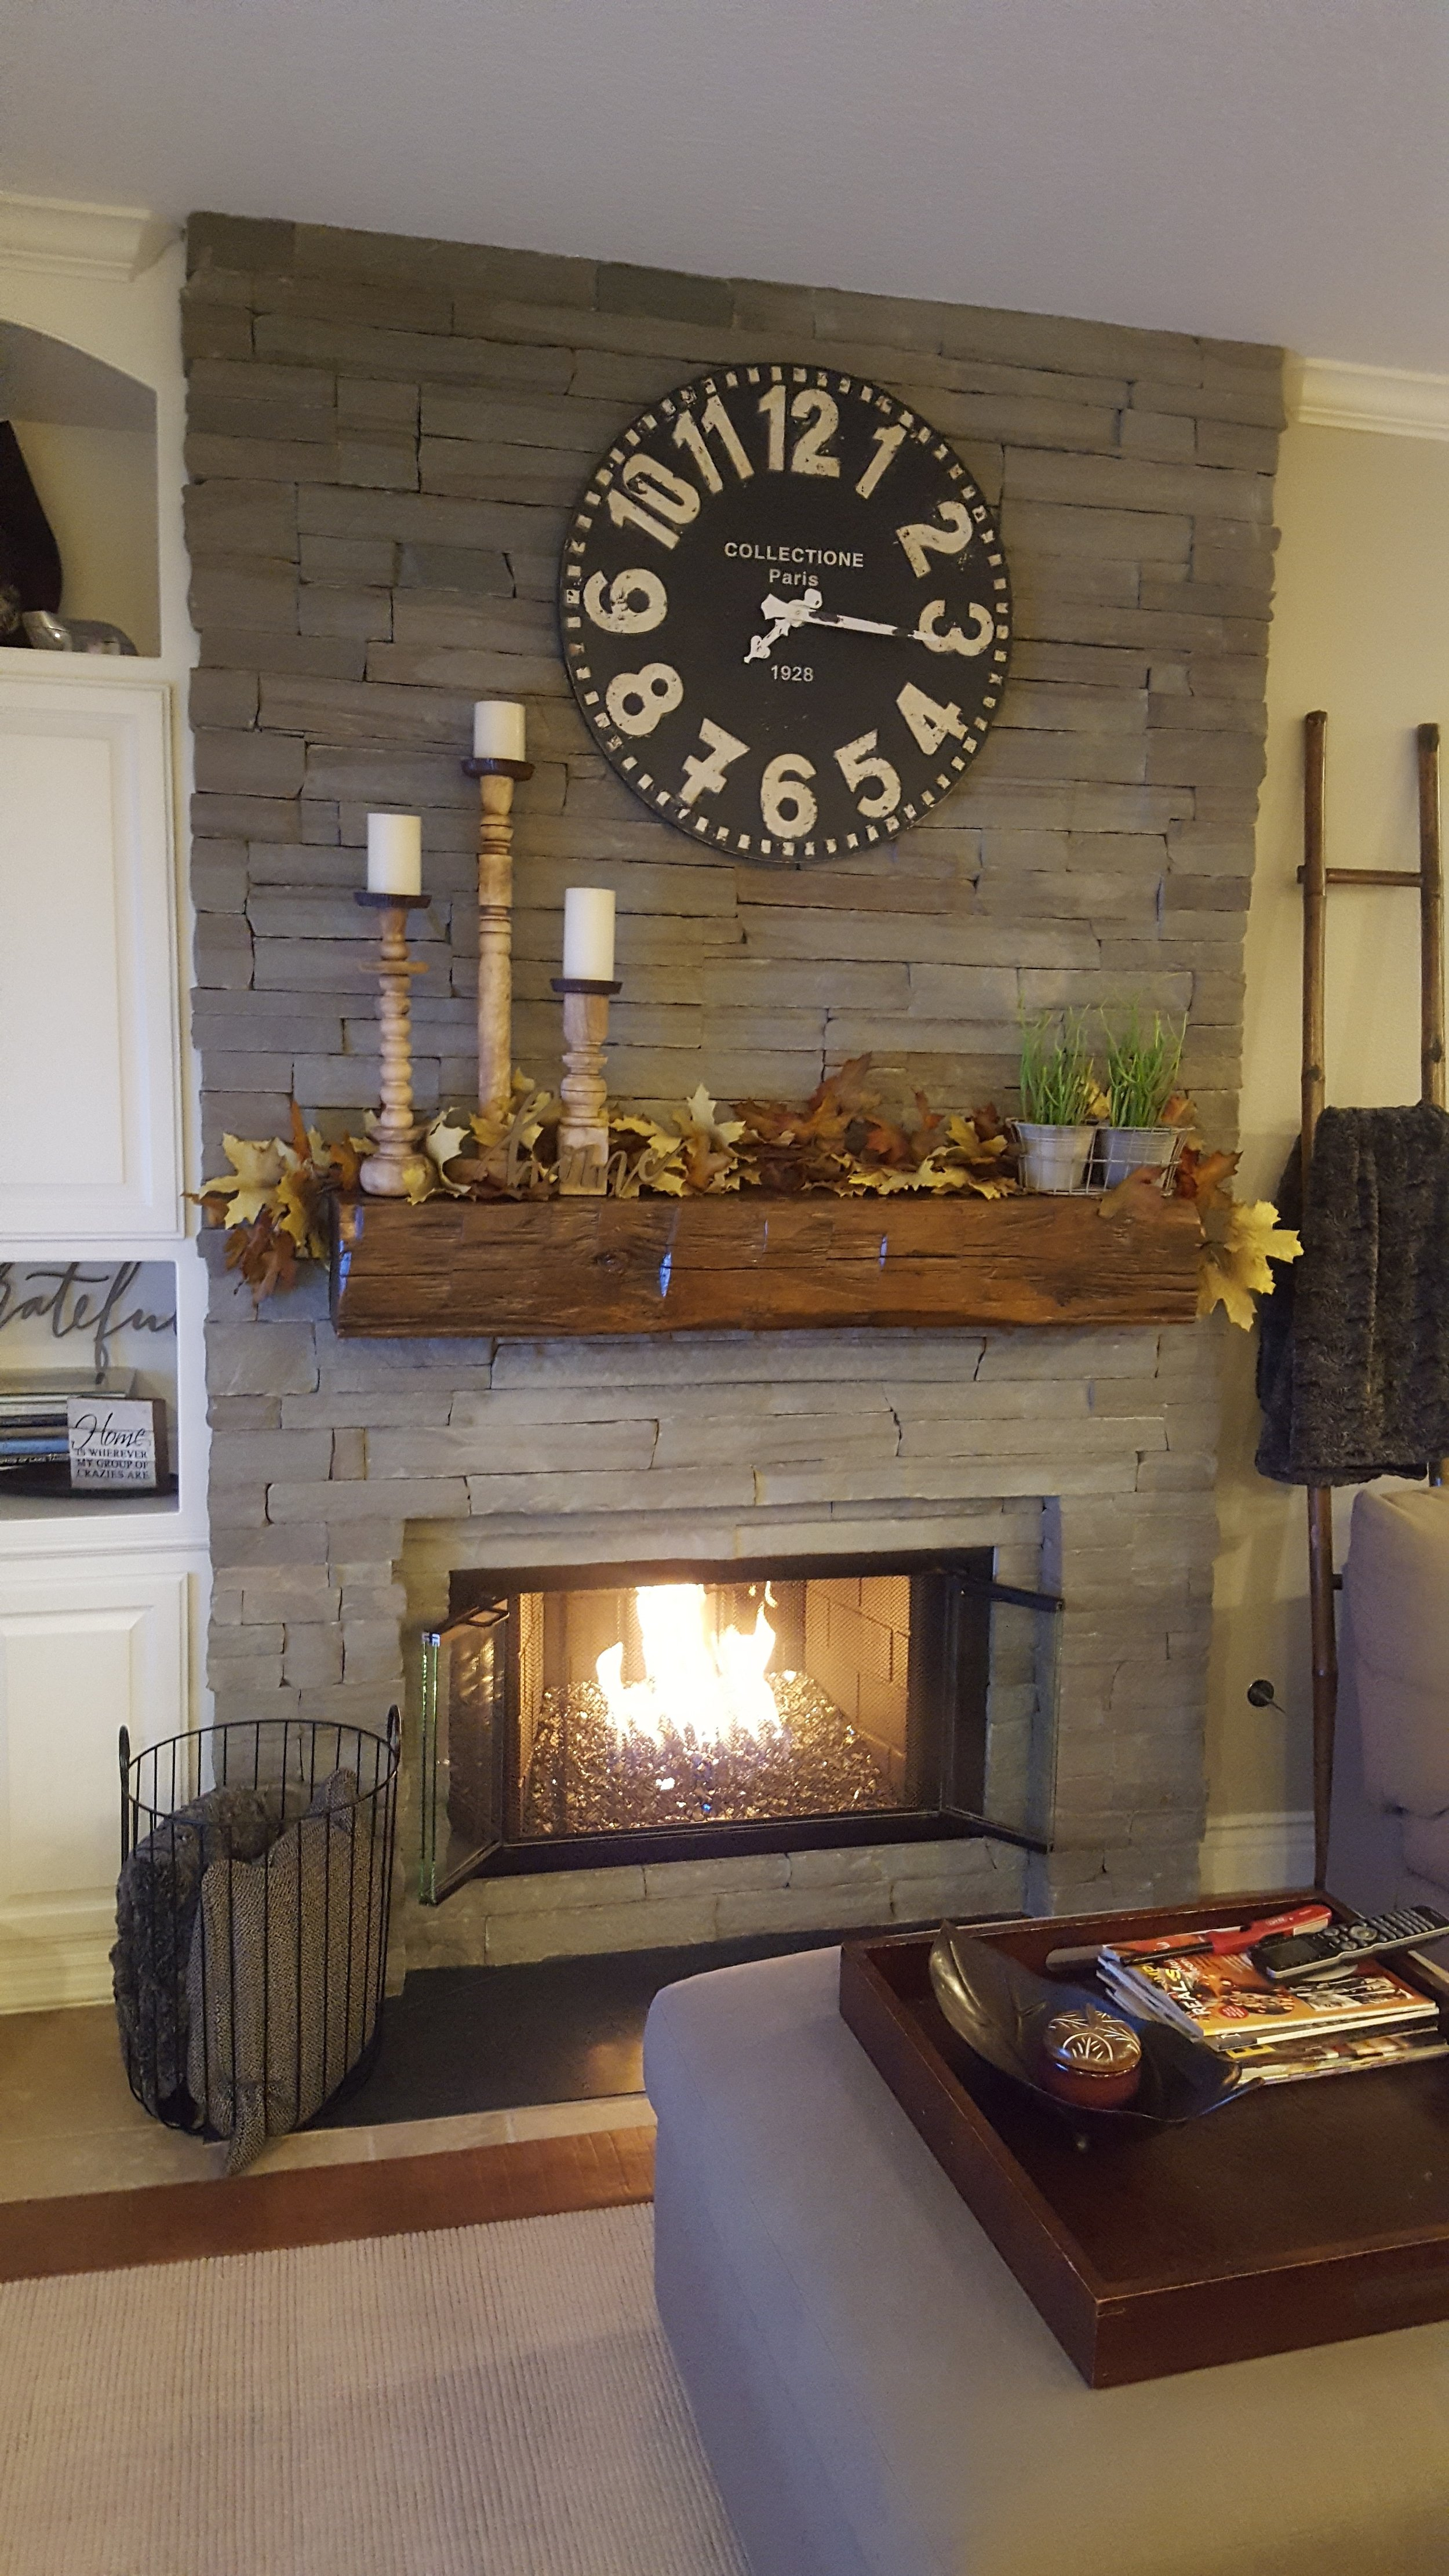 Reclaimed barn beams create wonderful mantels! U.S. Reclaimed, Vintage Lumber and Wood Works is stocked with reclaimed beams that date back to the early 1800's. Each piece is unique and filled with history. We also offer a variety of finishes to create a custom look that is like no other. Visit the store or contact us to get started with your reclaimed wood mantel. We are ready to help you find your vintage wood piece.